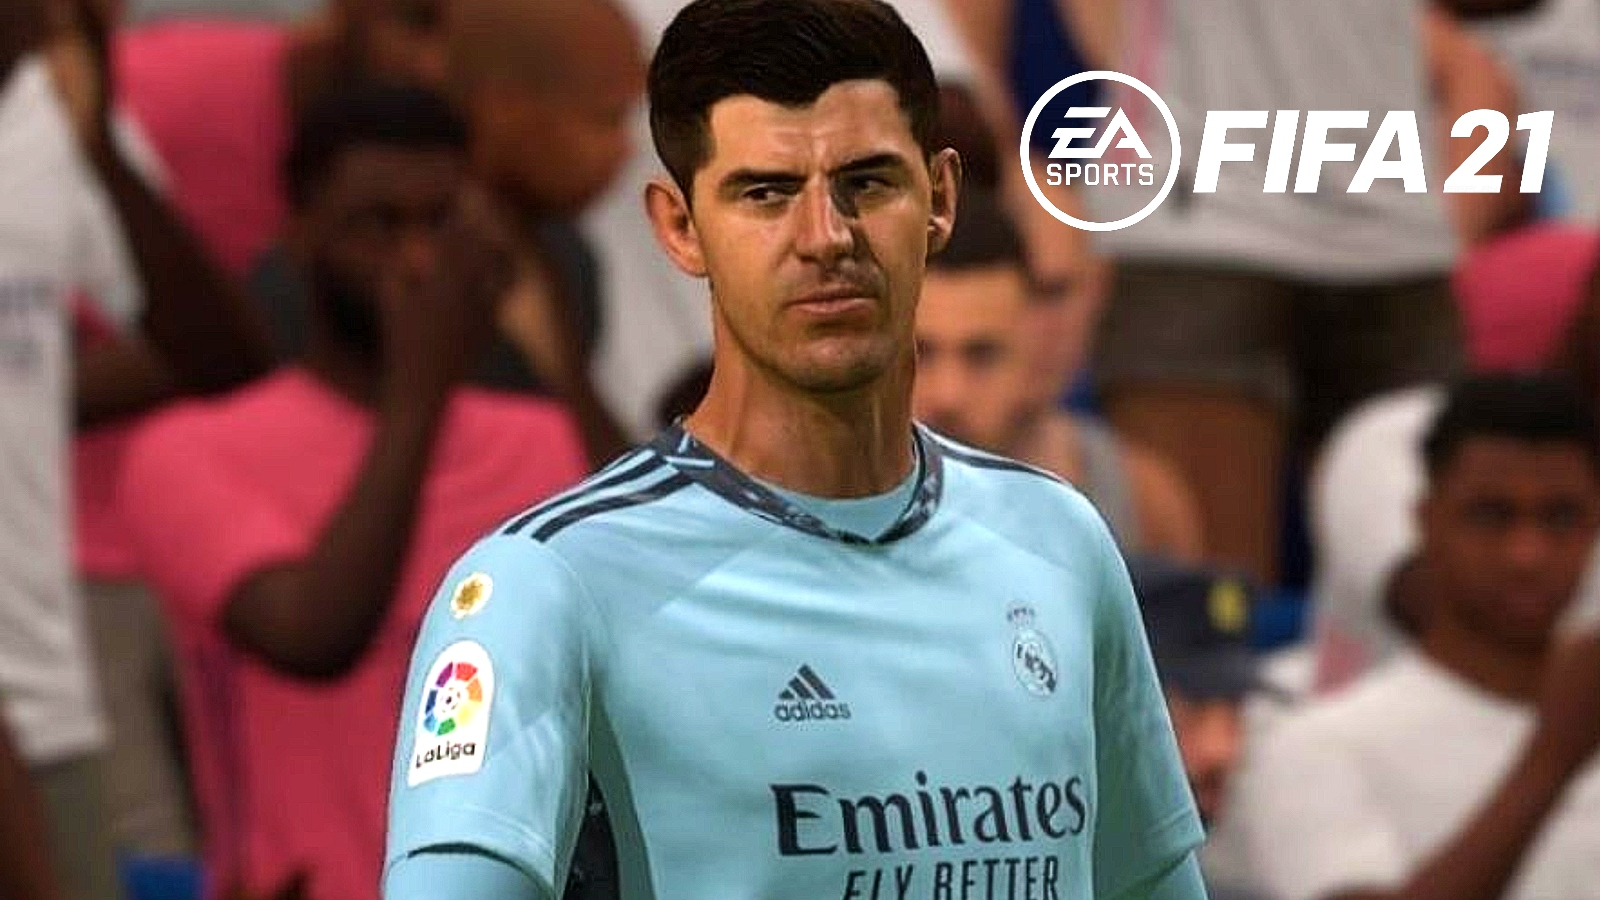 Real Madrid thibaut courtois fifa 21